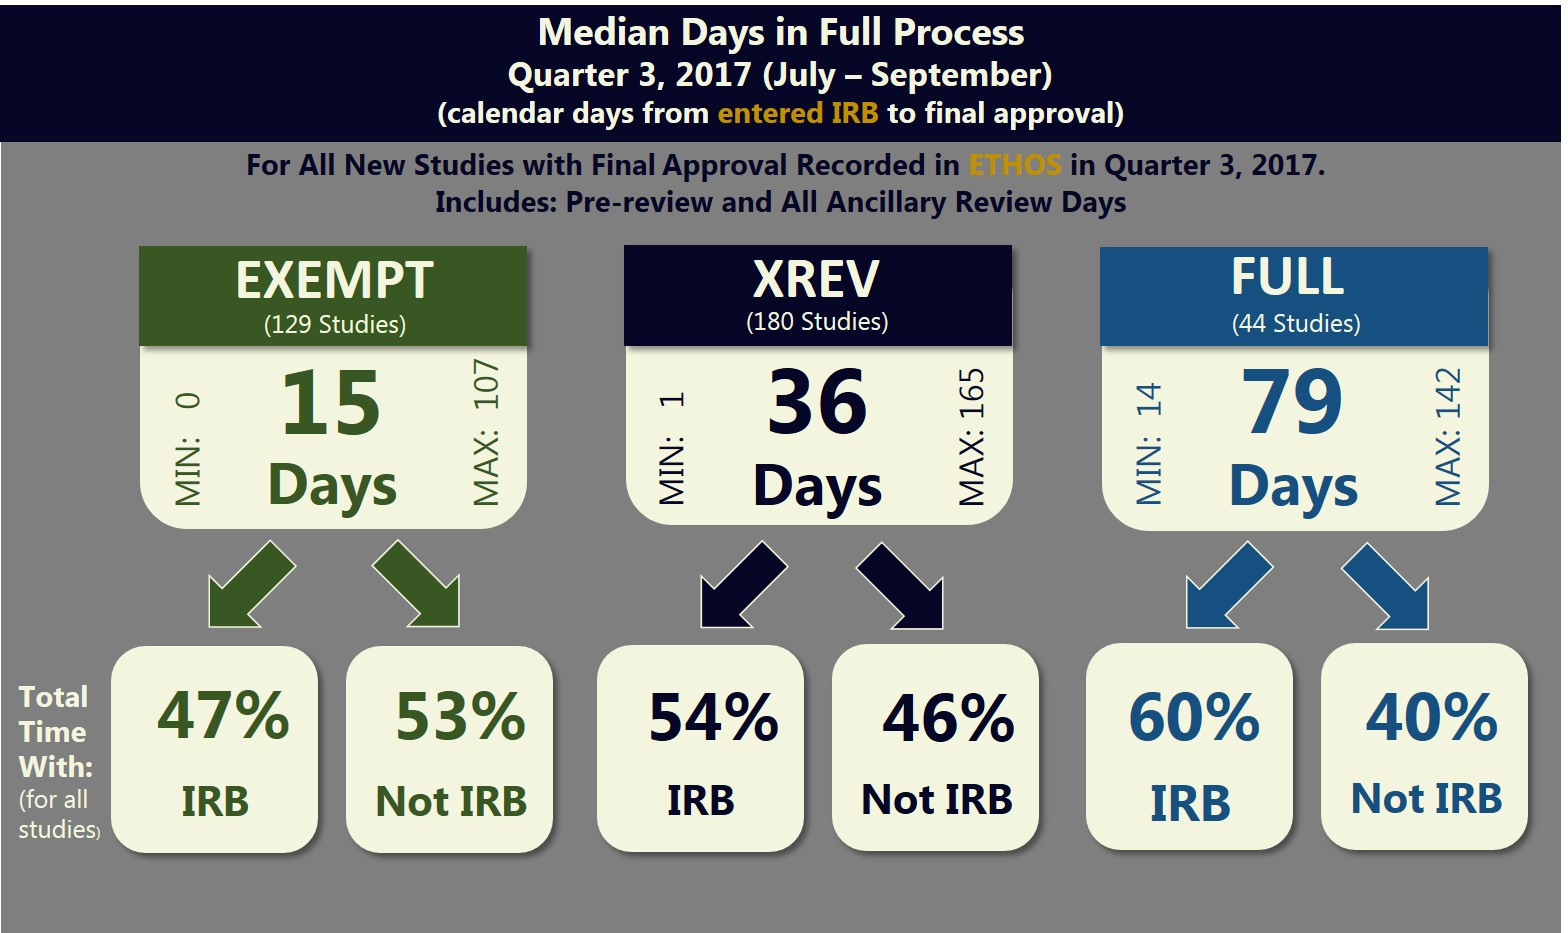 Median Days in Full Process